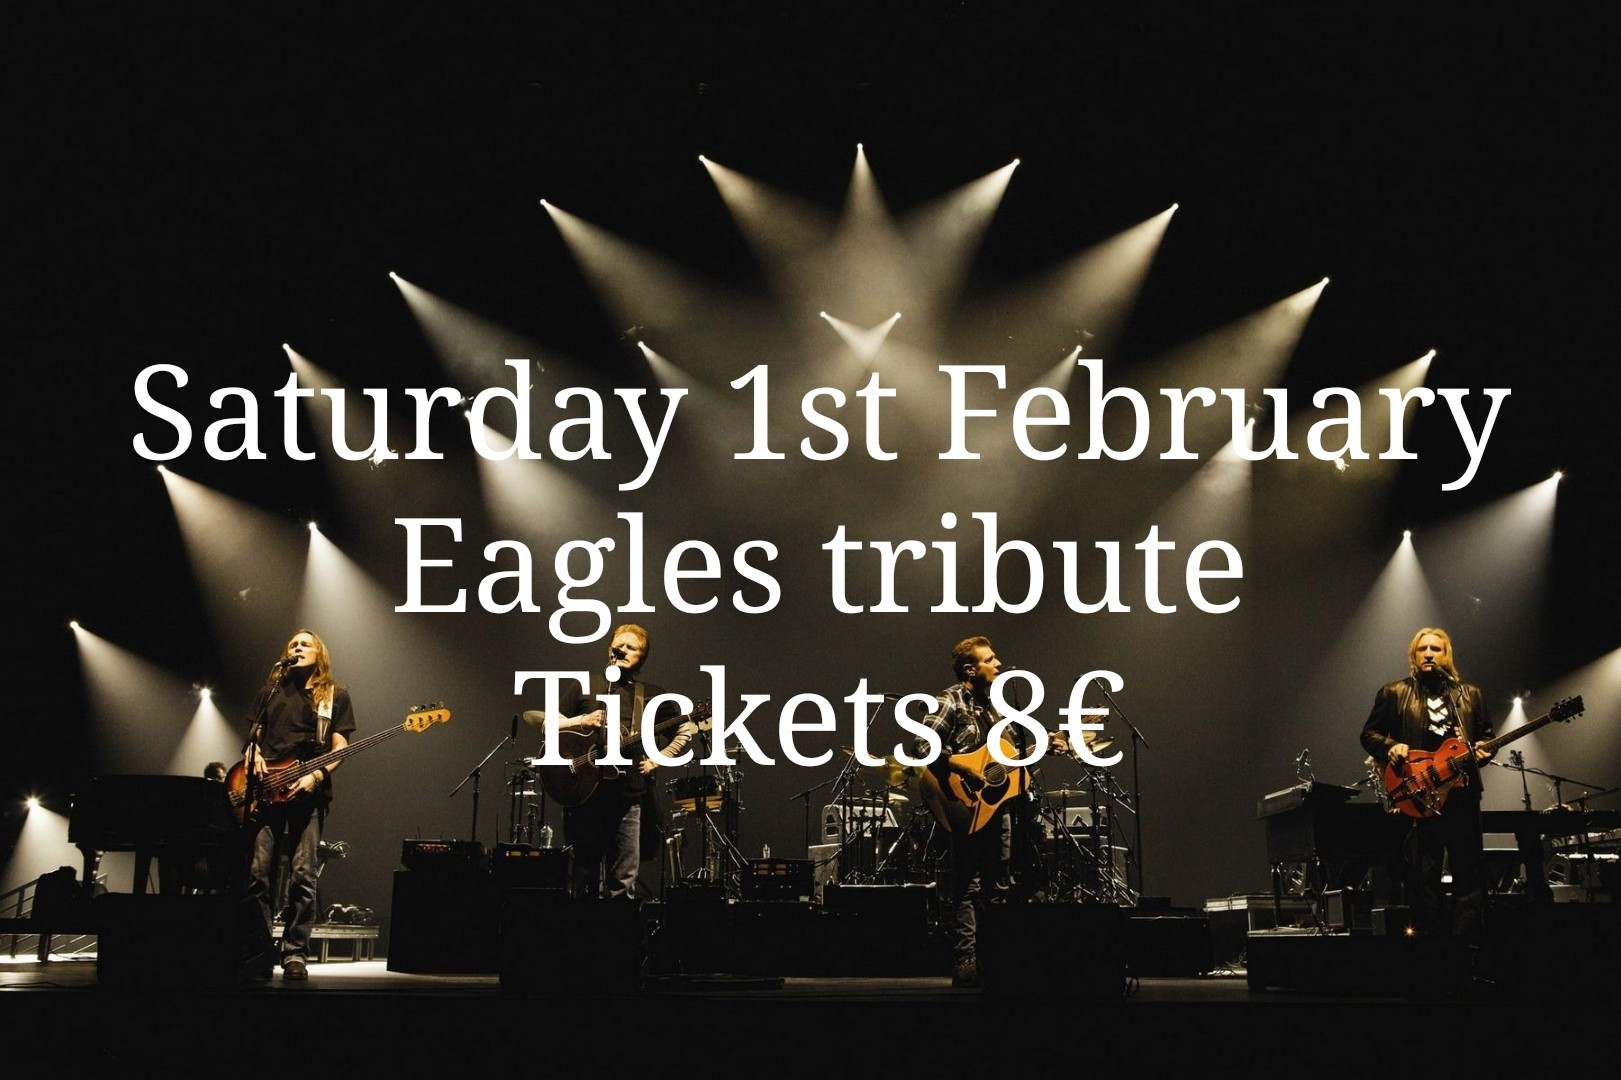 Eagles tribute